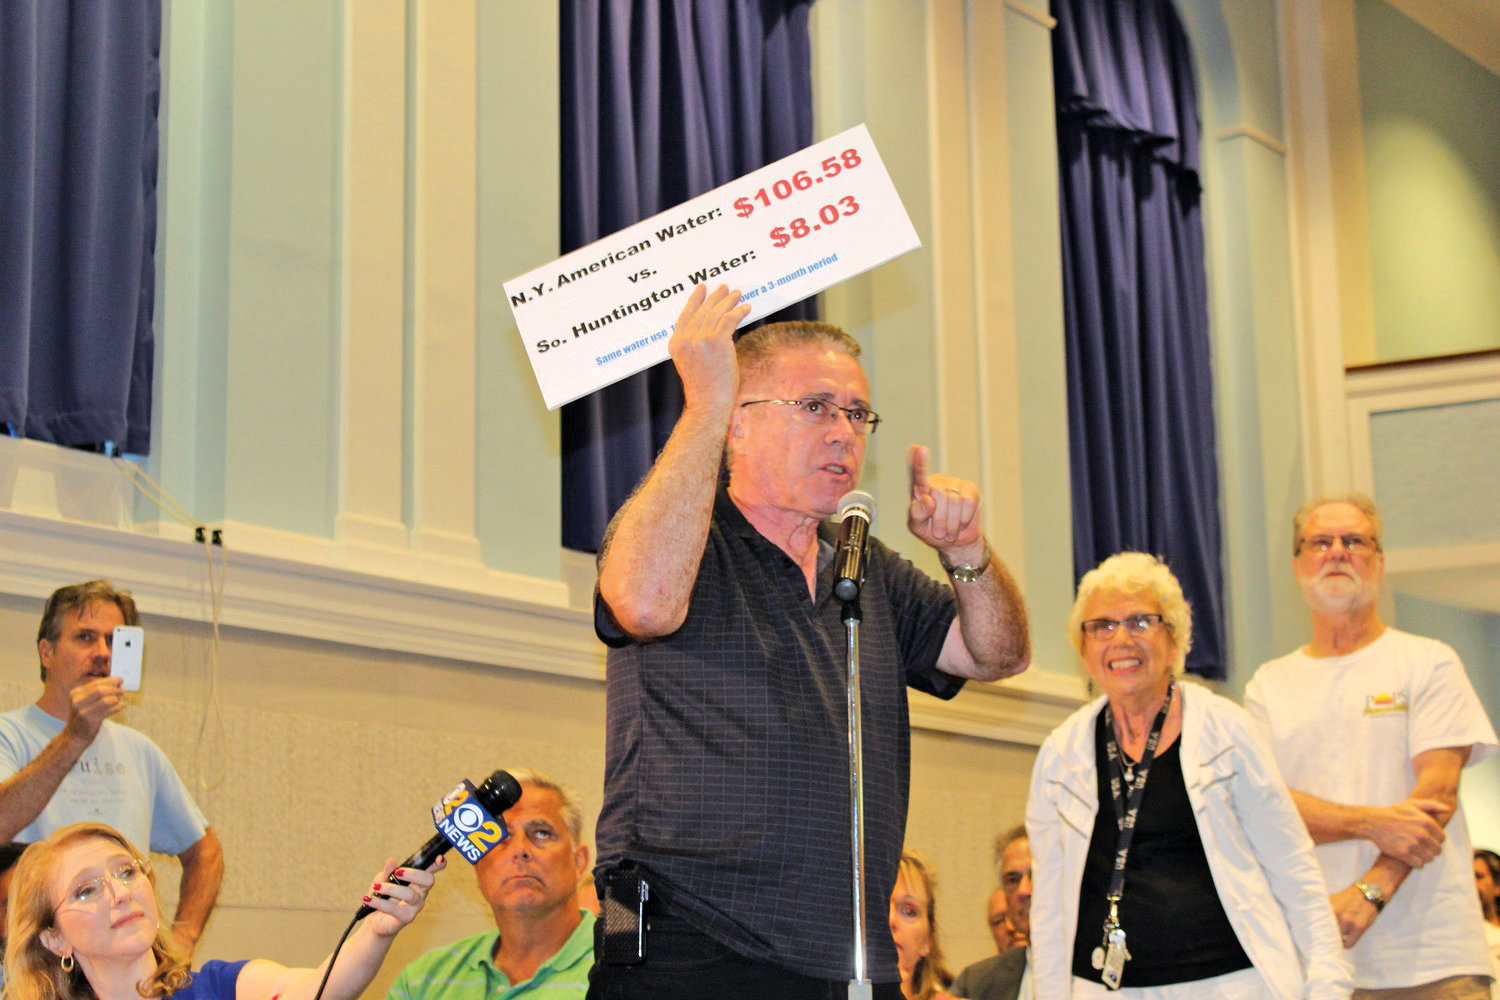 Jack McCloy, of Baldwin, protested the utility's rate hikes last August at a town hall in East Rockaway.